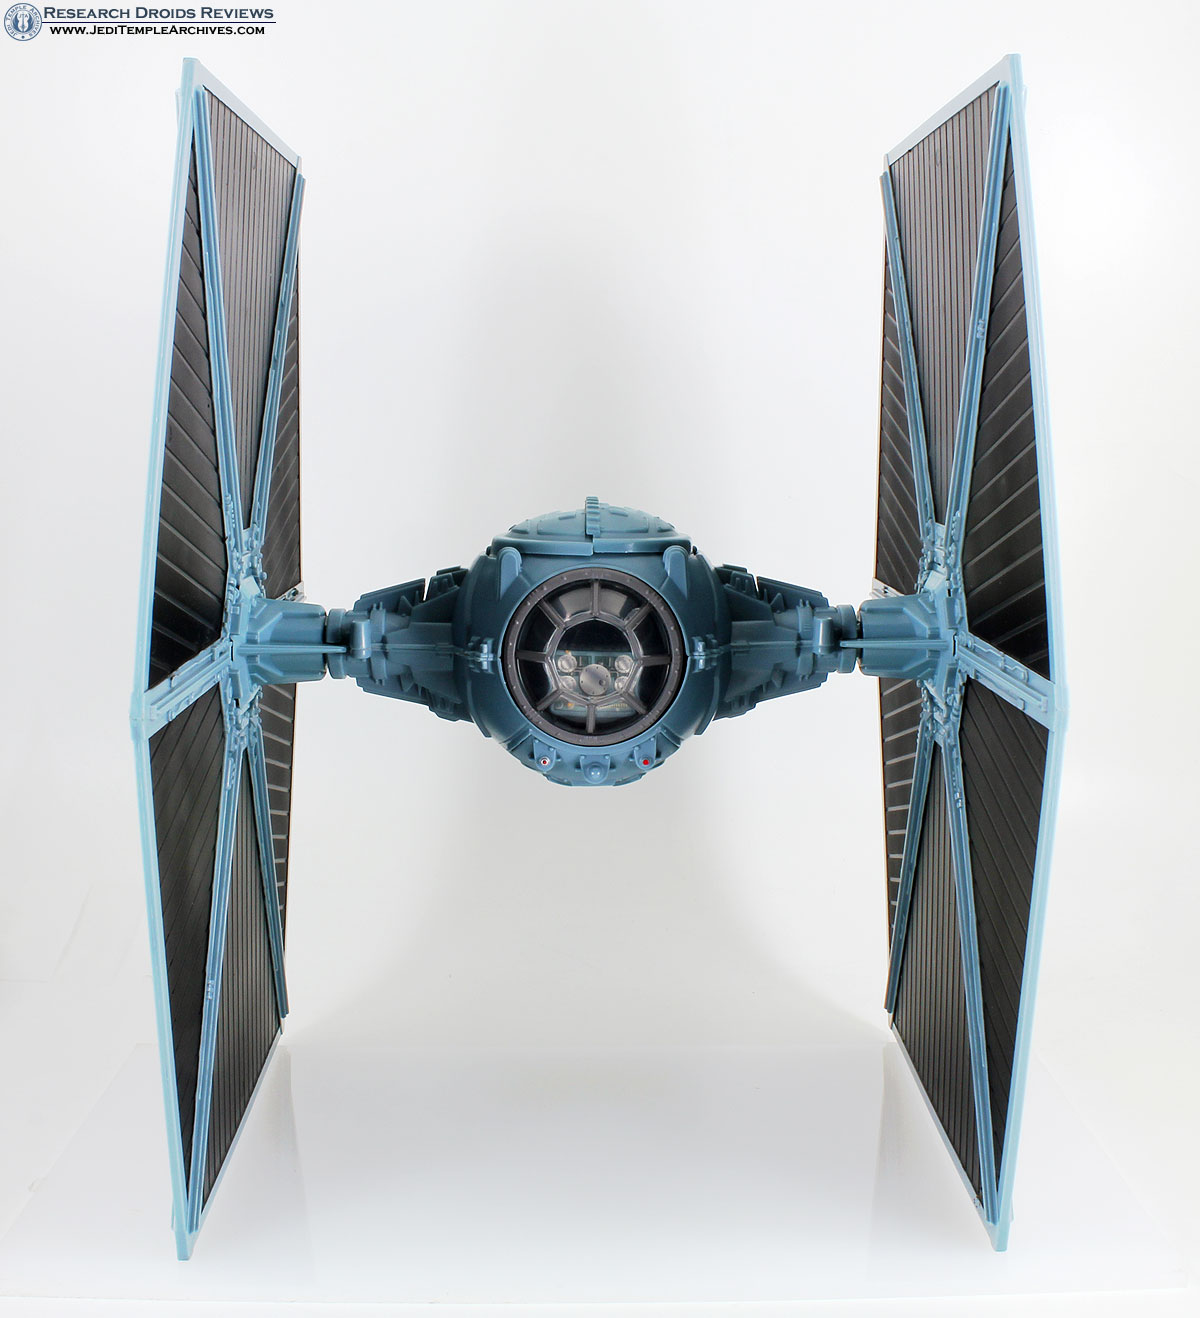 TIE Fighter (Standard Starfighter of the Imperial Forces) -